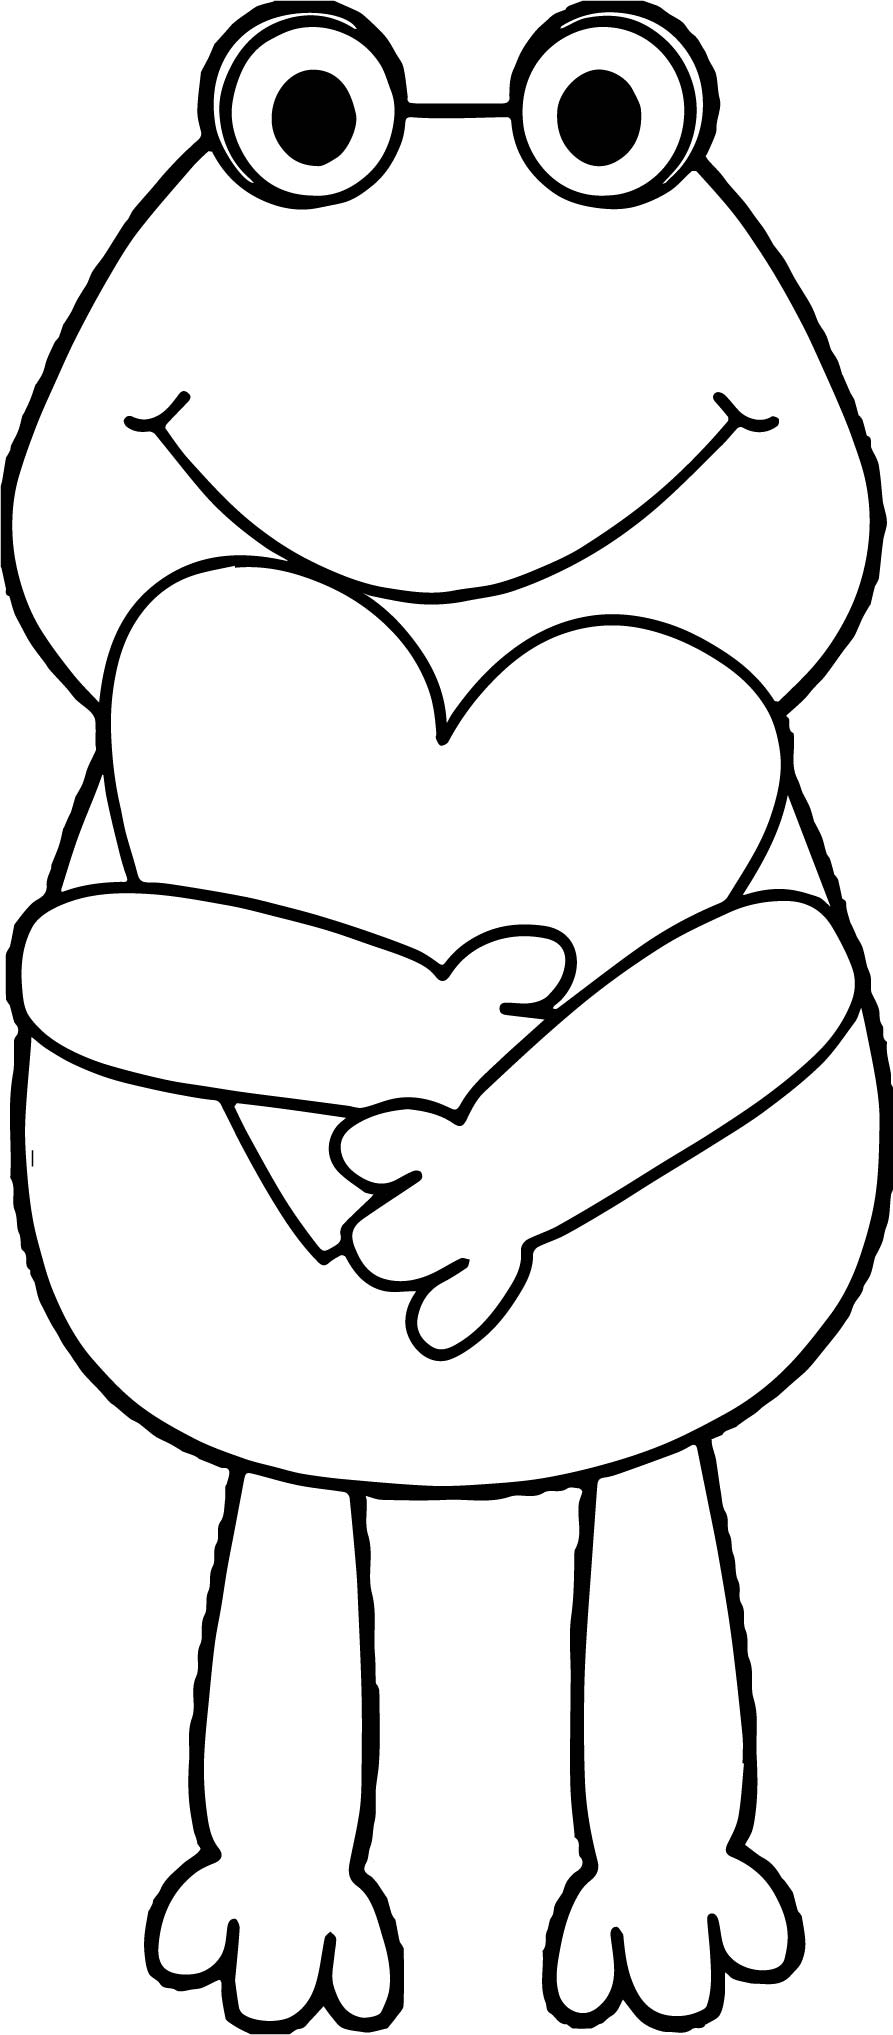 893x2035 Frog Holding Heart Coloring Page Wecoloringpage